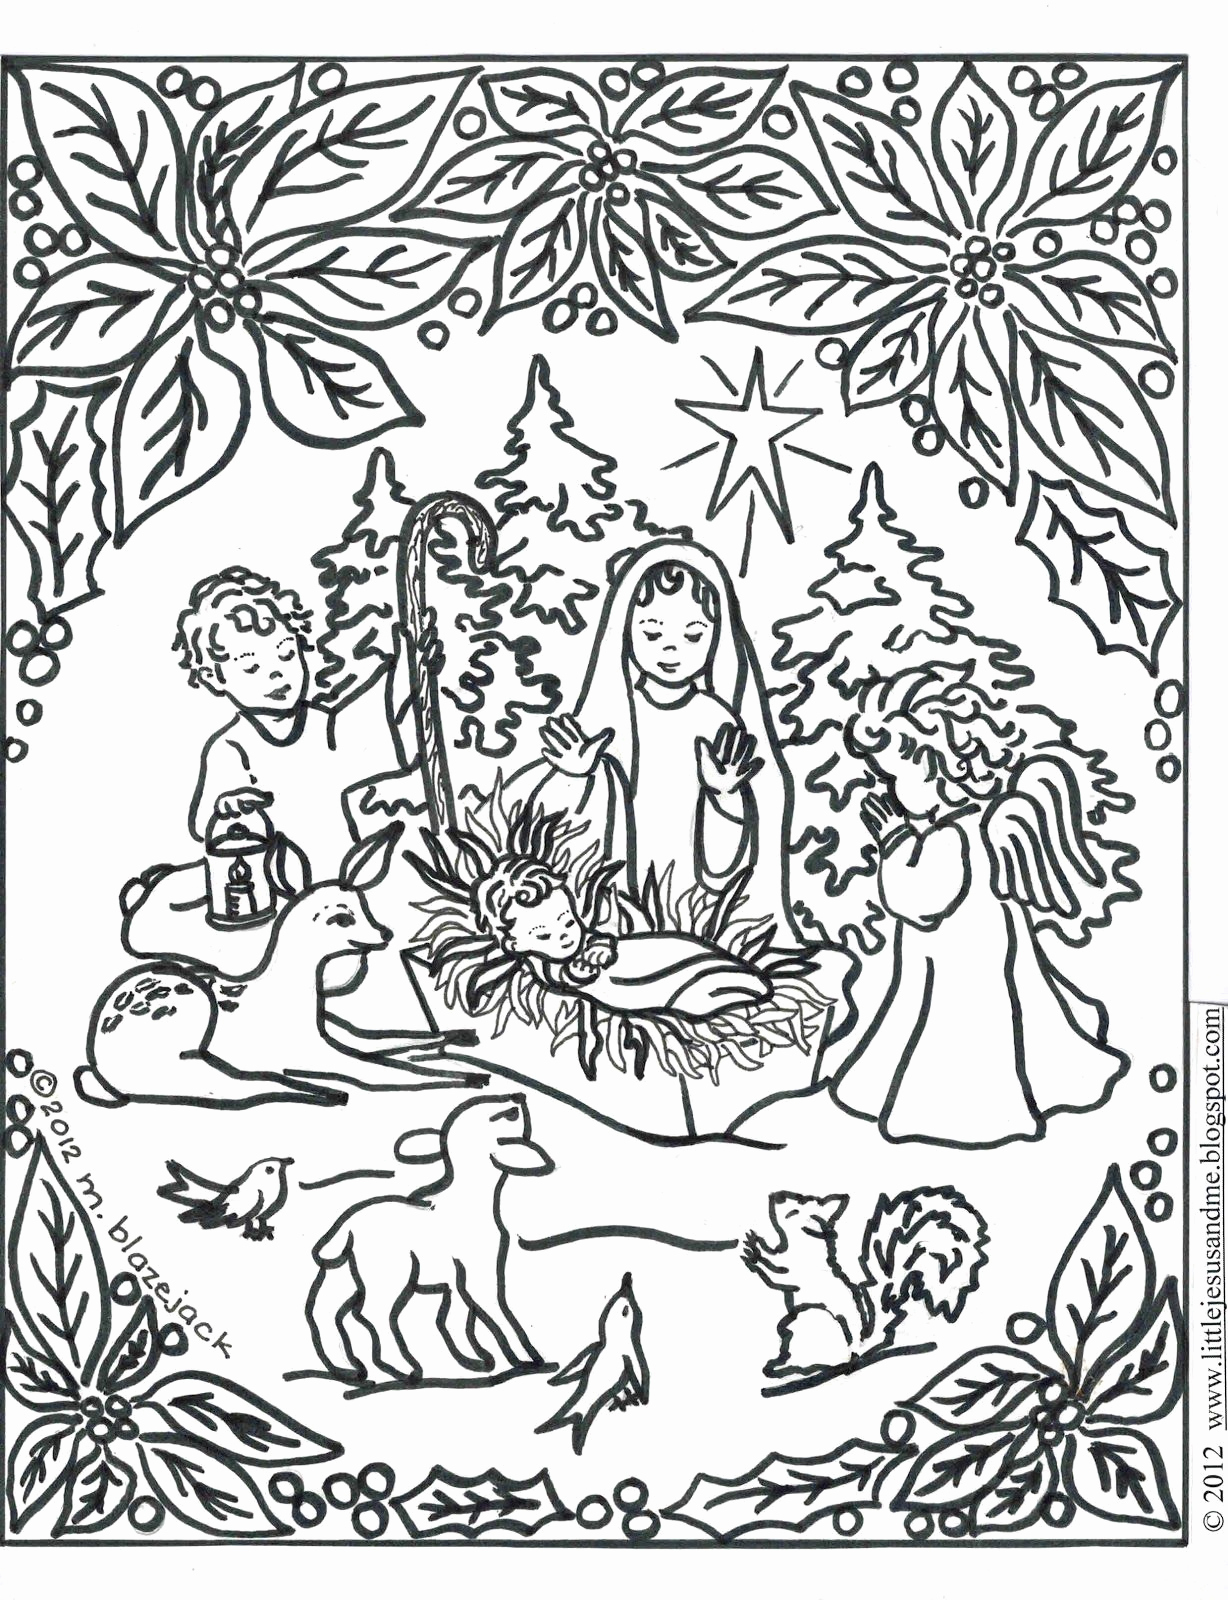 Free Christian Christmas Coloring Pages Printable With Jesus Page For Kids